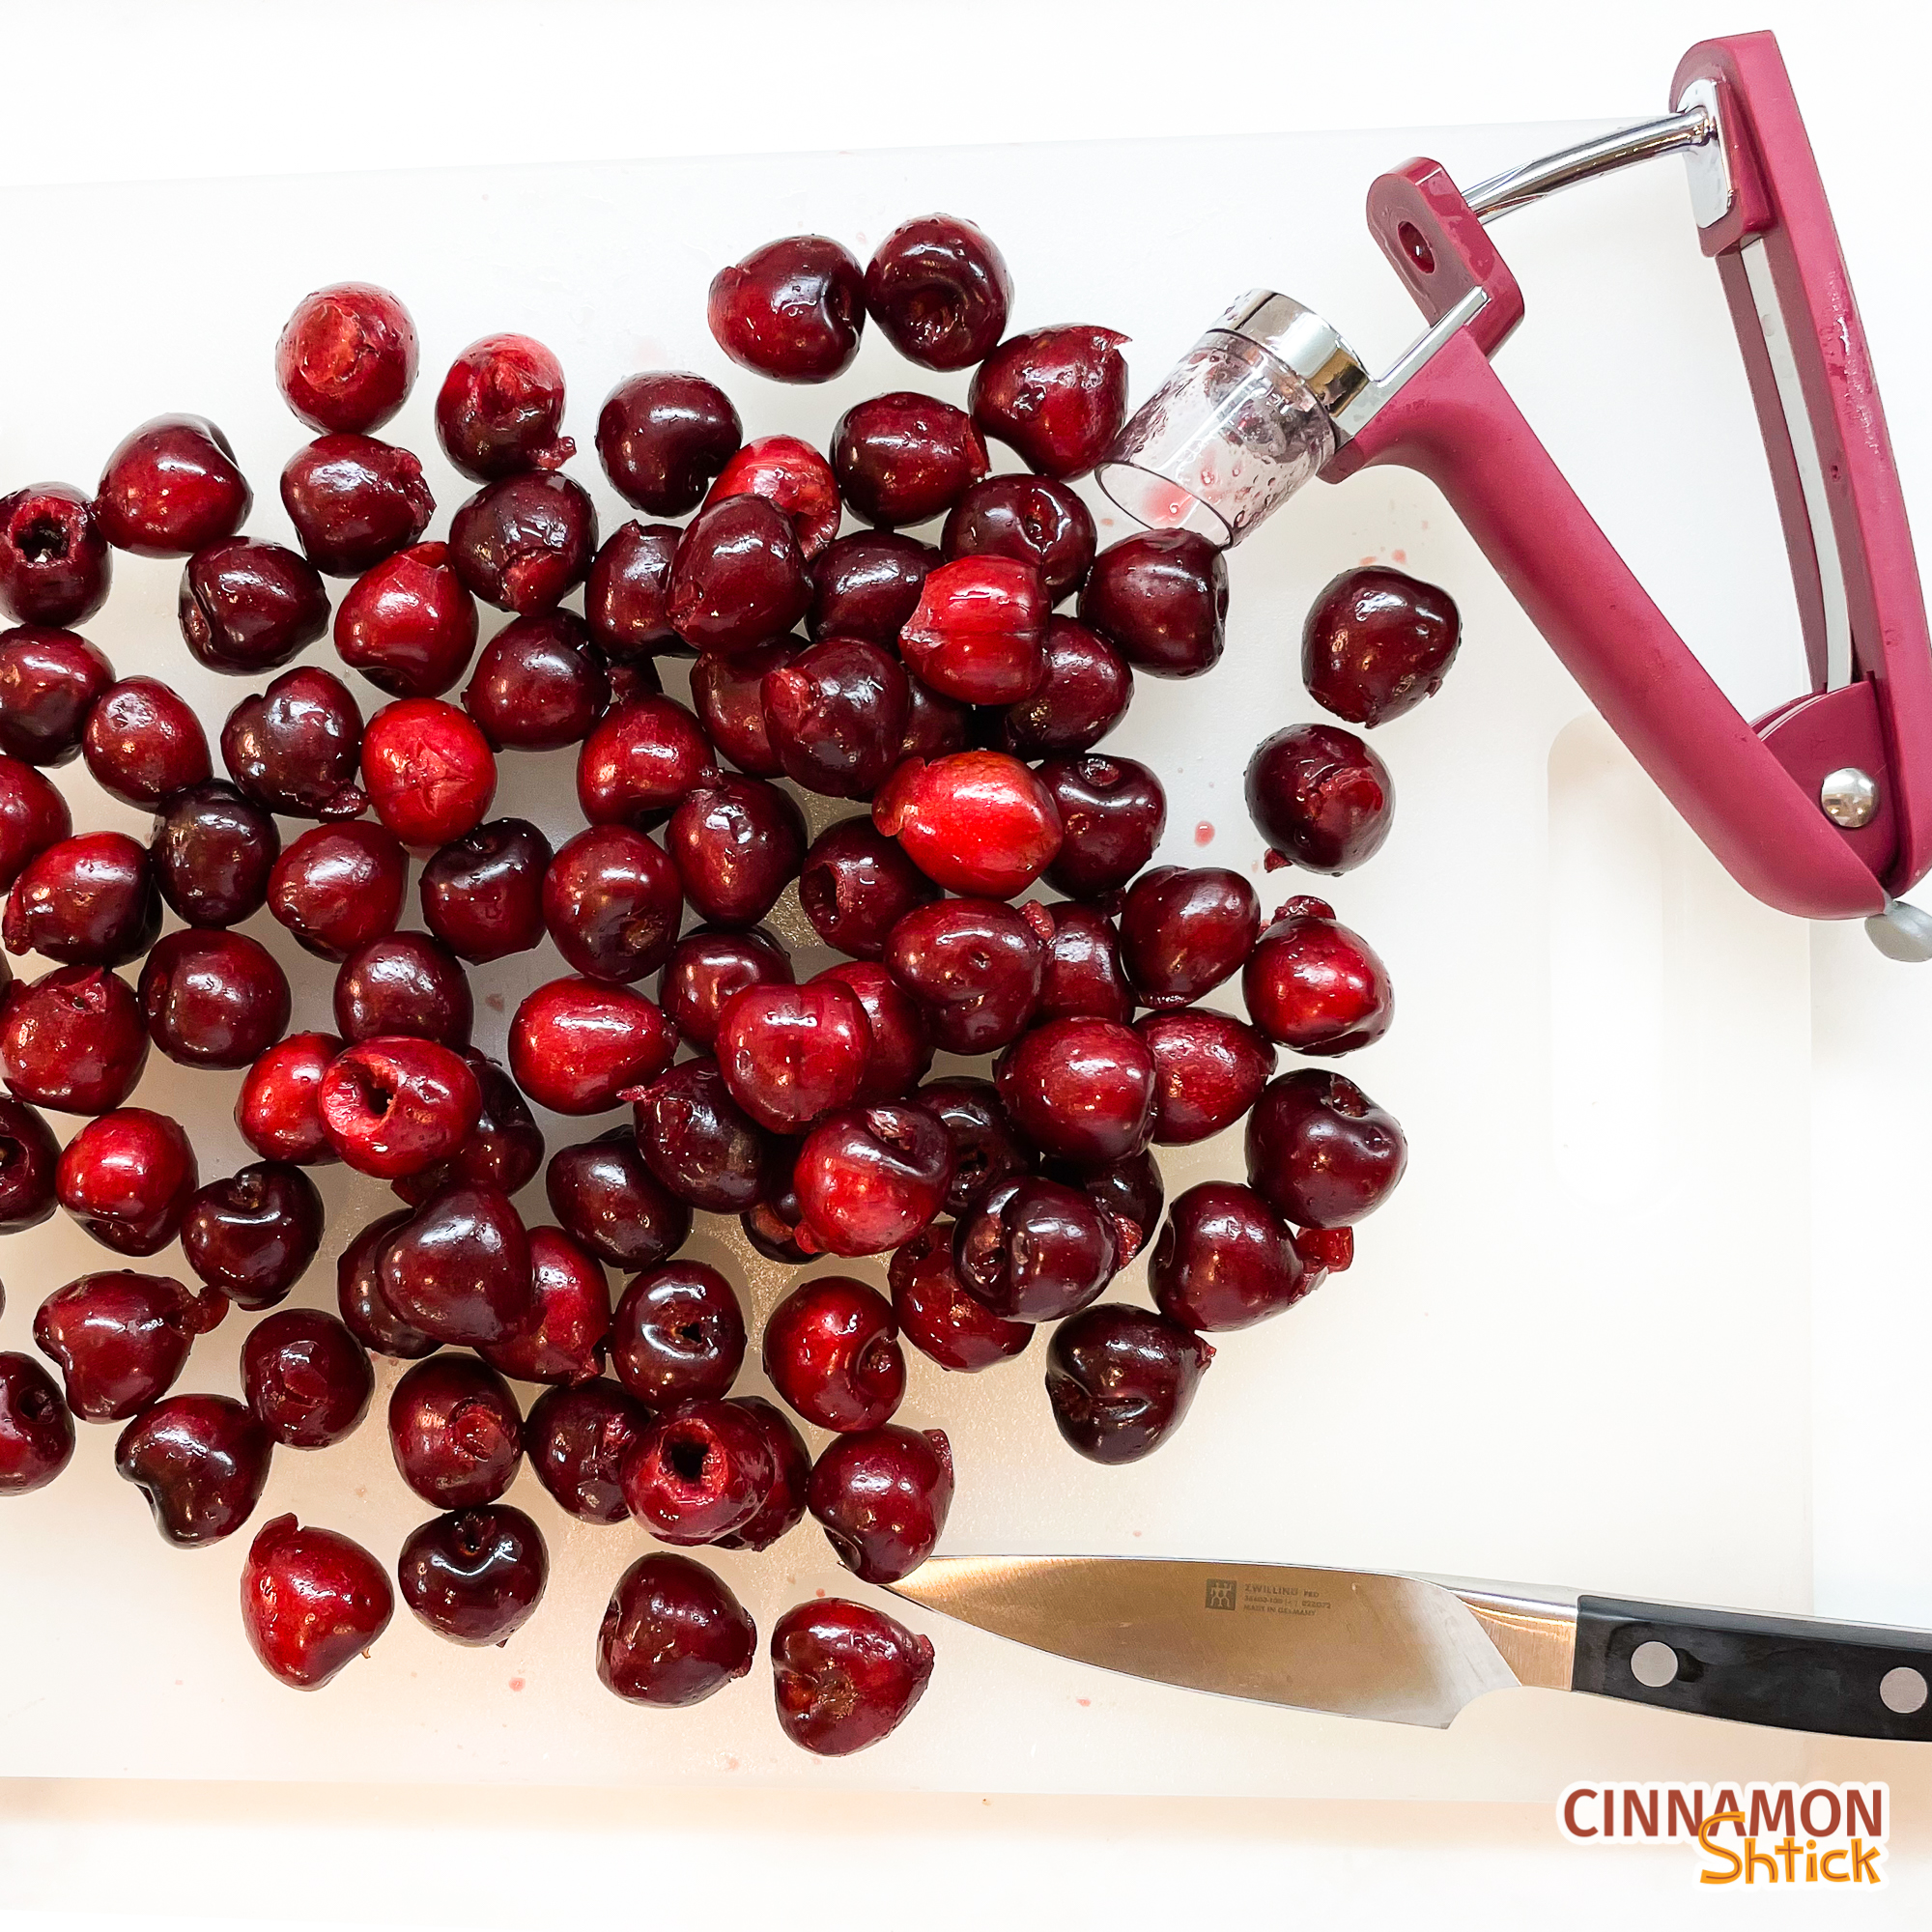 Pitted cherries on cutting board with cherry pitter and a paring knife